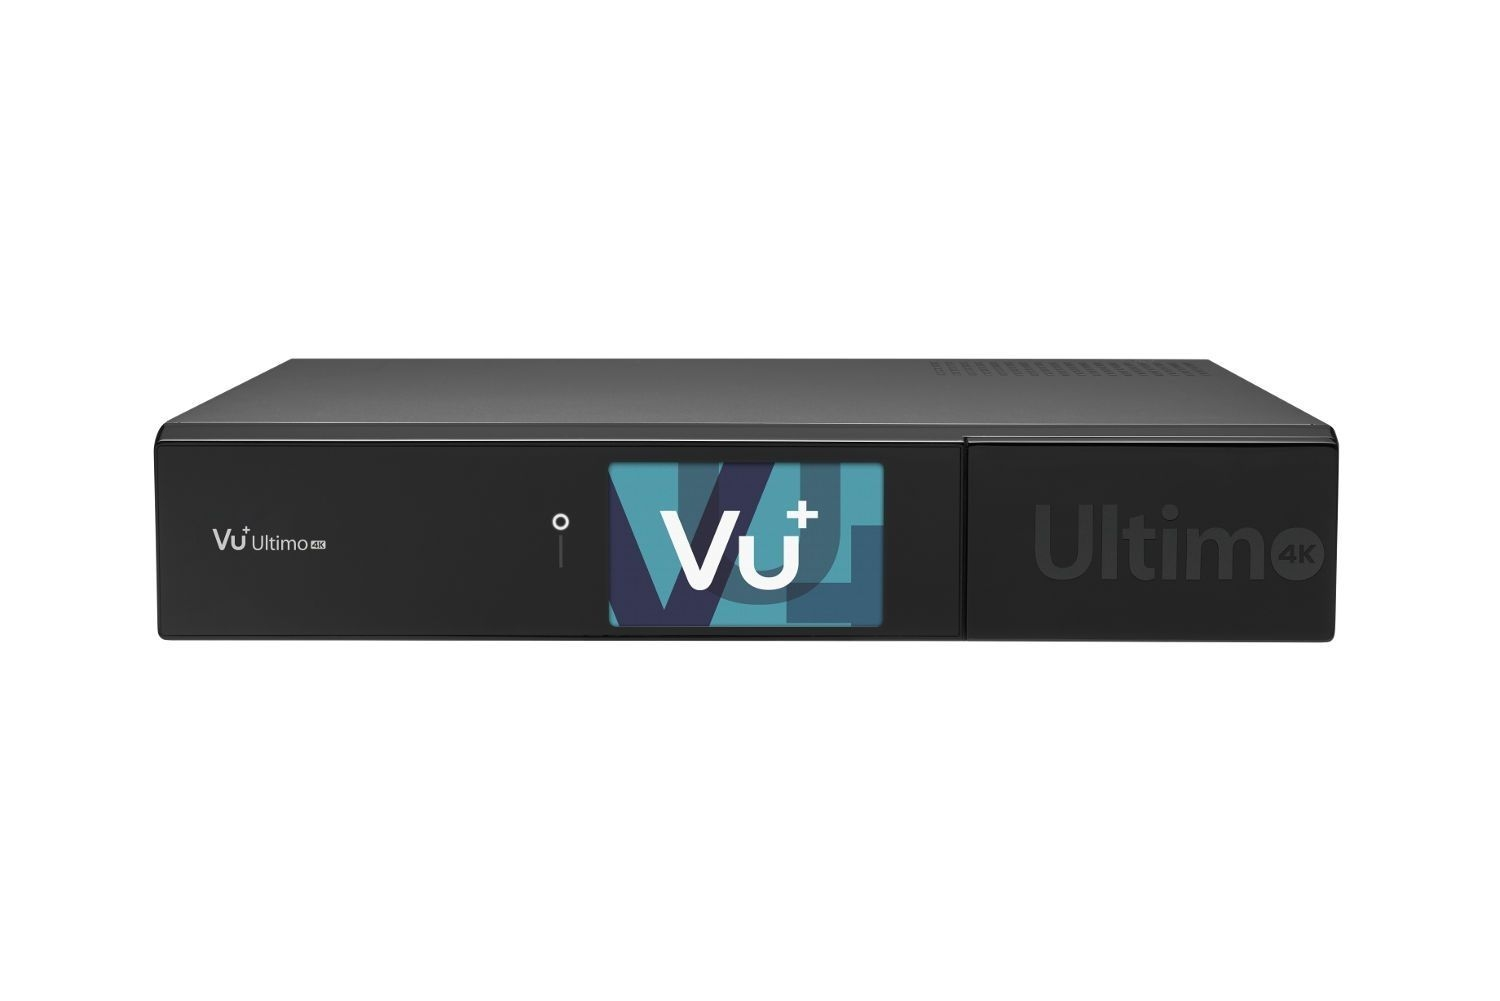 VU+ Ultimo 4K 2x DVB-C FBC / 1x DVB-C/T2 Dual Tuner 1 TB HDD Linux Receiver UHD 2160p